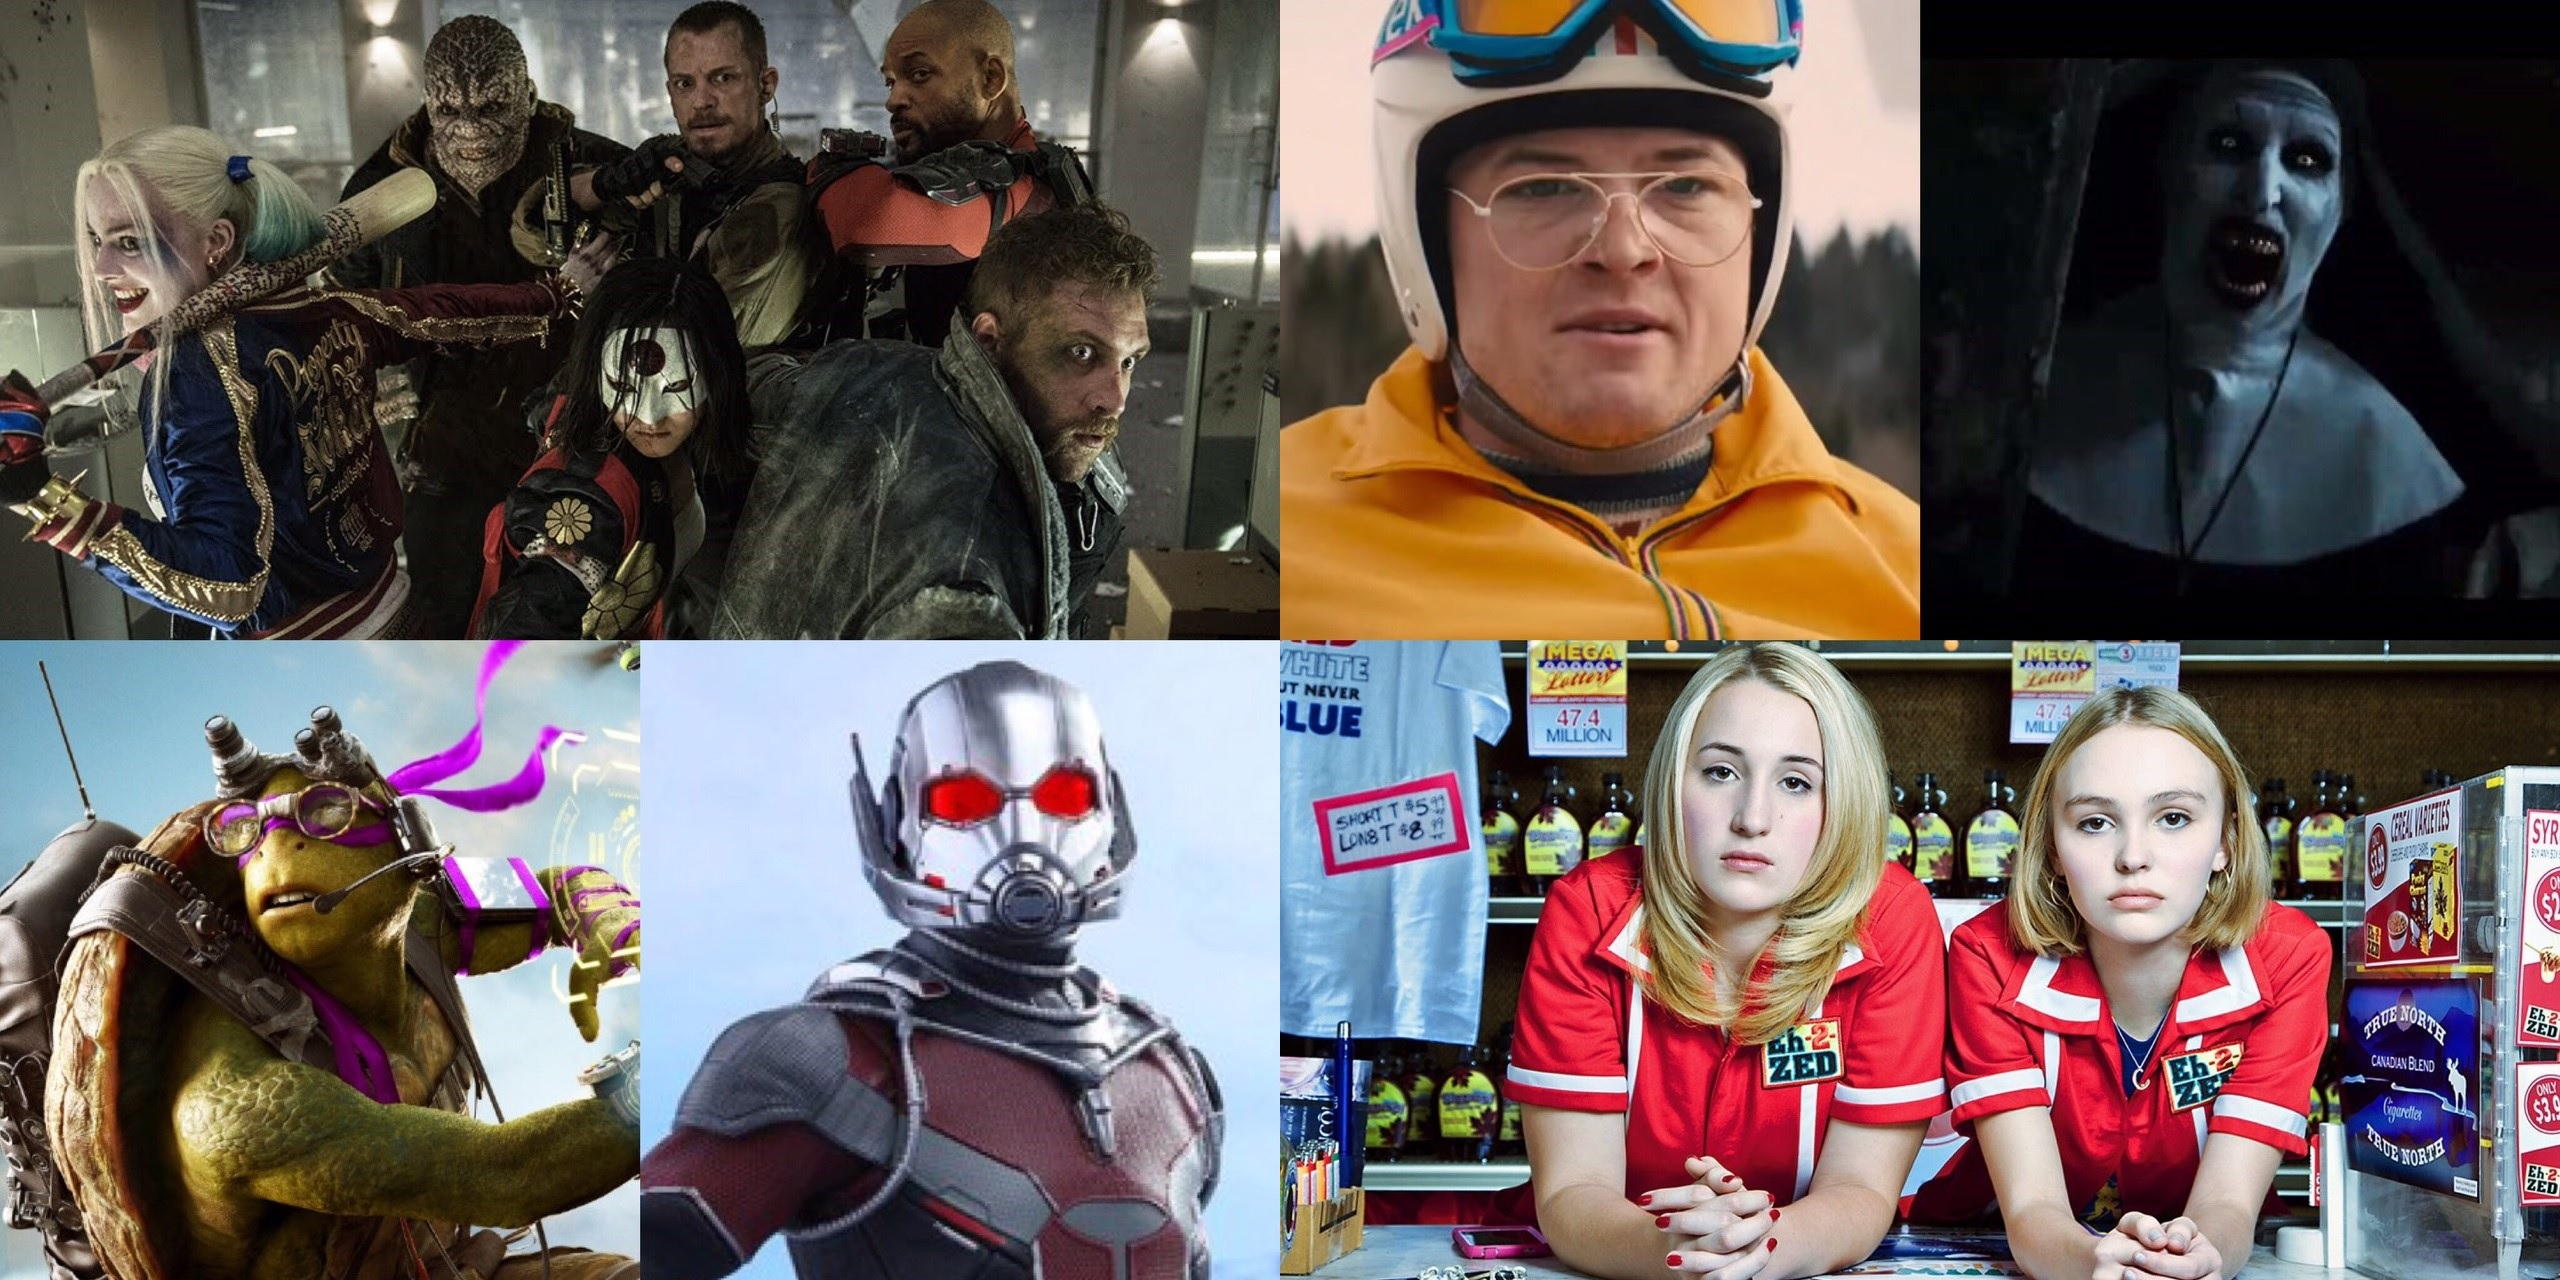 EP 123 - Films of 2016 w/ Mass Moviecide UK (Deadpool, The Conjuring 2 & Suicide Squad)